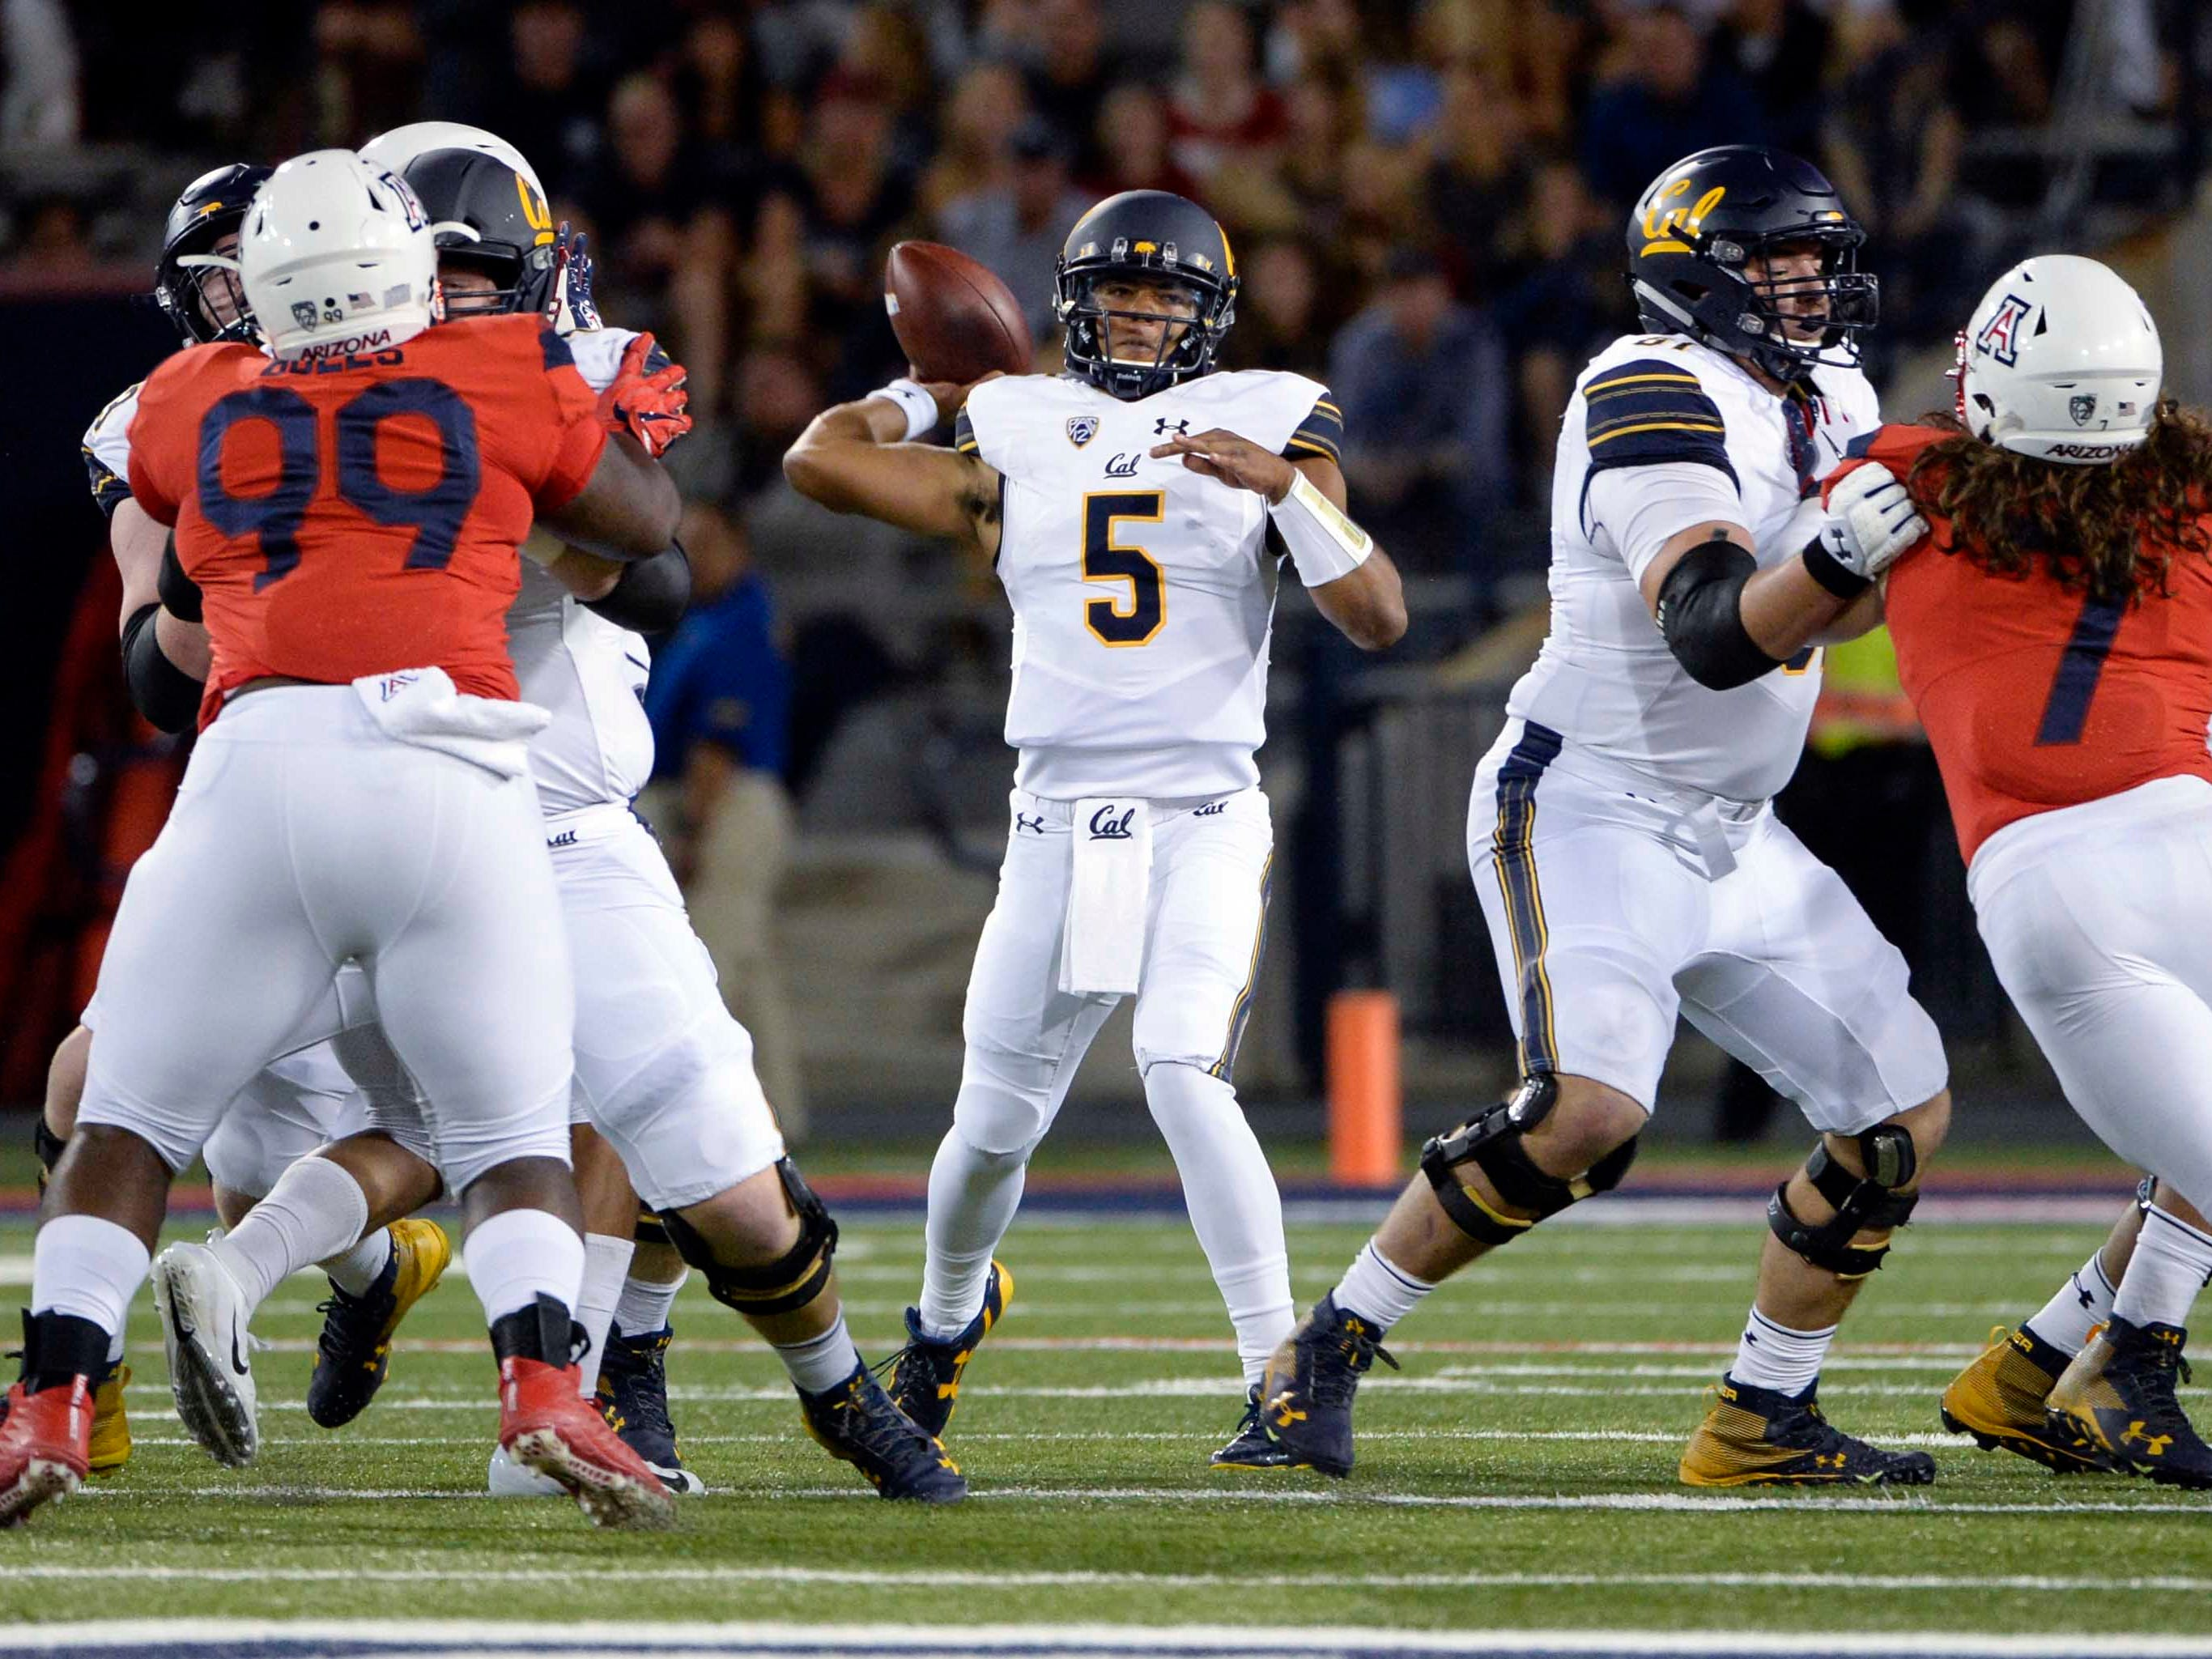 Oct 6, 2018; Tucson, AZ, USA; California Golden Bears quarterback Brandon McIlwain (5) passes the ball against the Arizona Wildcats during the first half at Arizona Stadium. Mandatory Credit: Casey Sapio-USA TODAY Sports